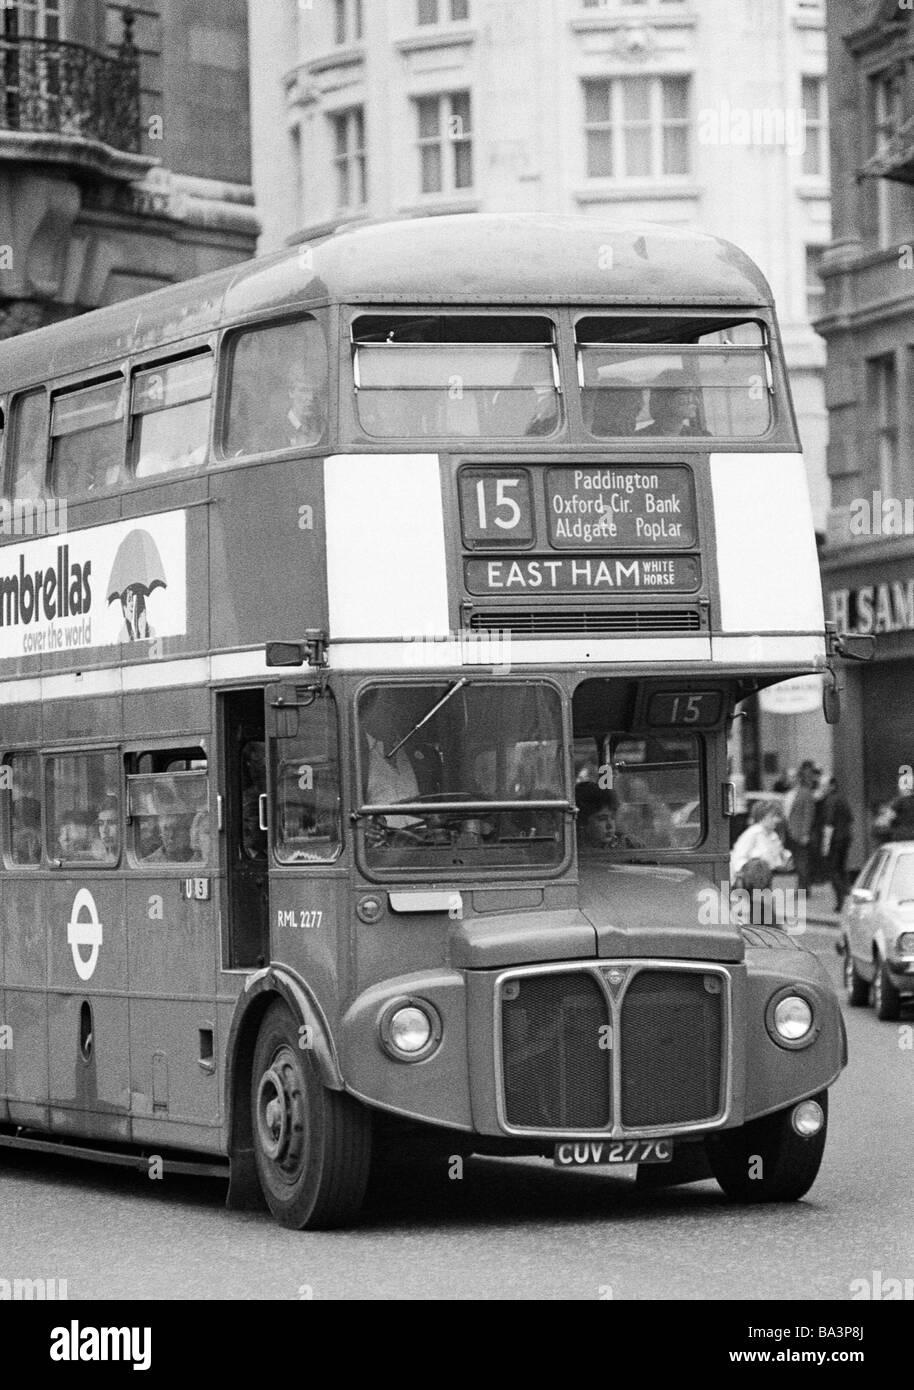 Seventies, black and white photo, road traffic, public service vehicle, double-deck bus, AEC Routemaster, Great - Stock Image